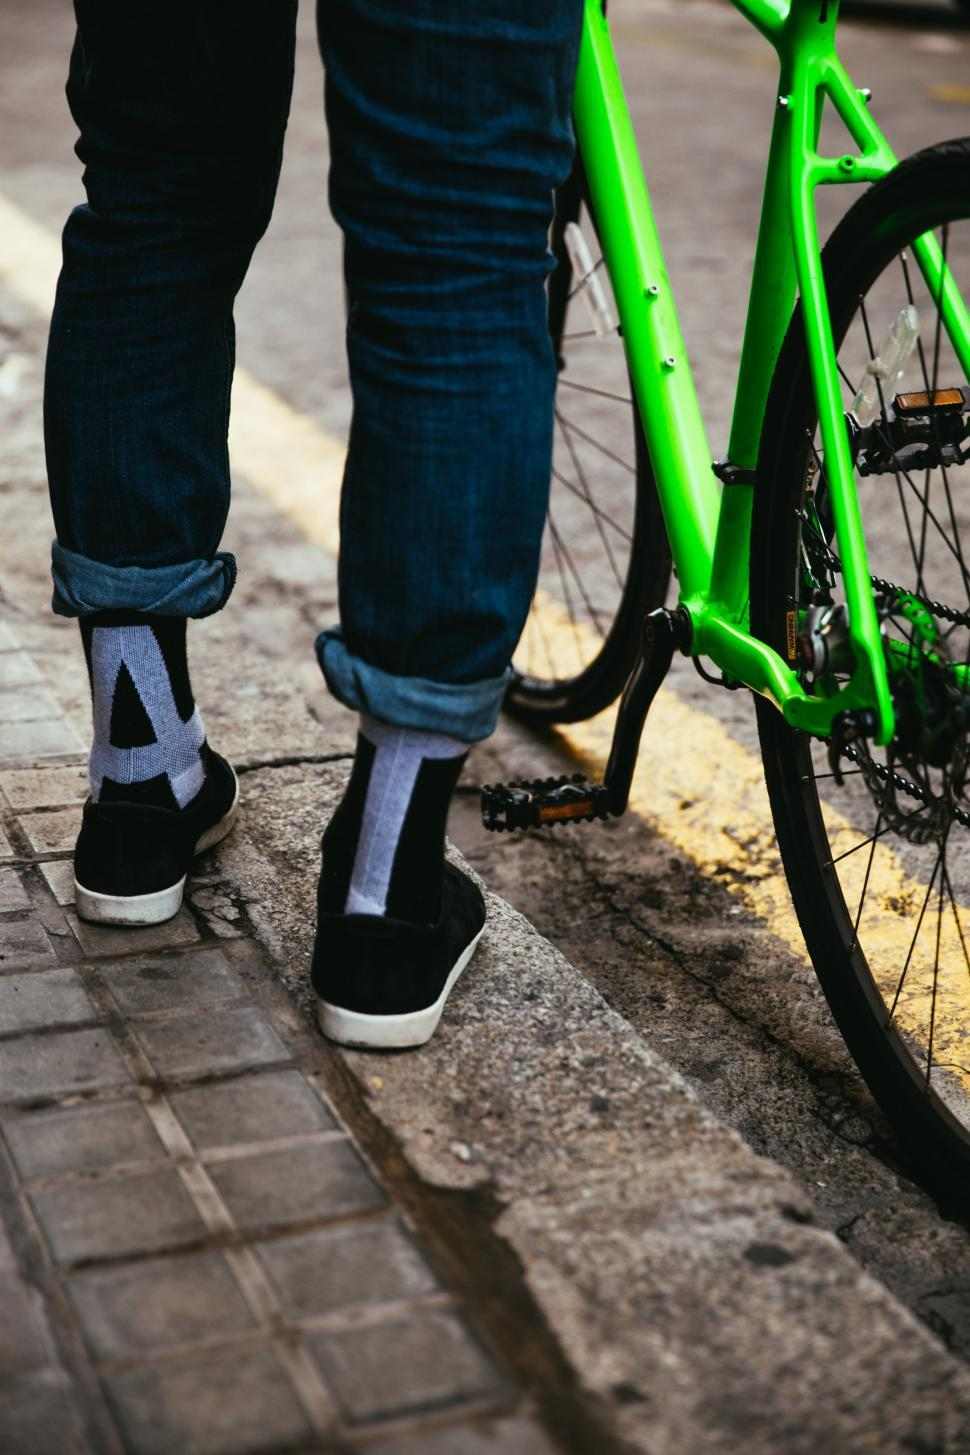 Download Free Stock Photo of A biker s feet with green bicycle